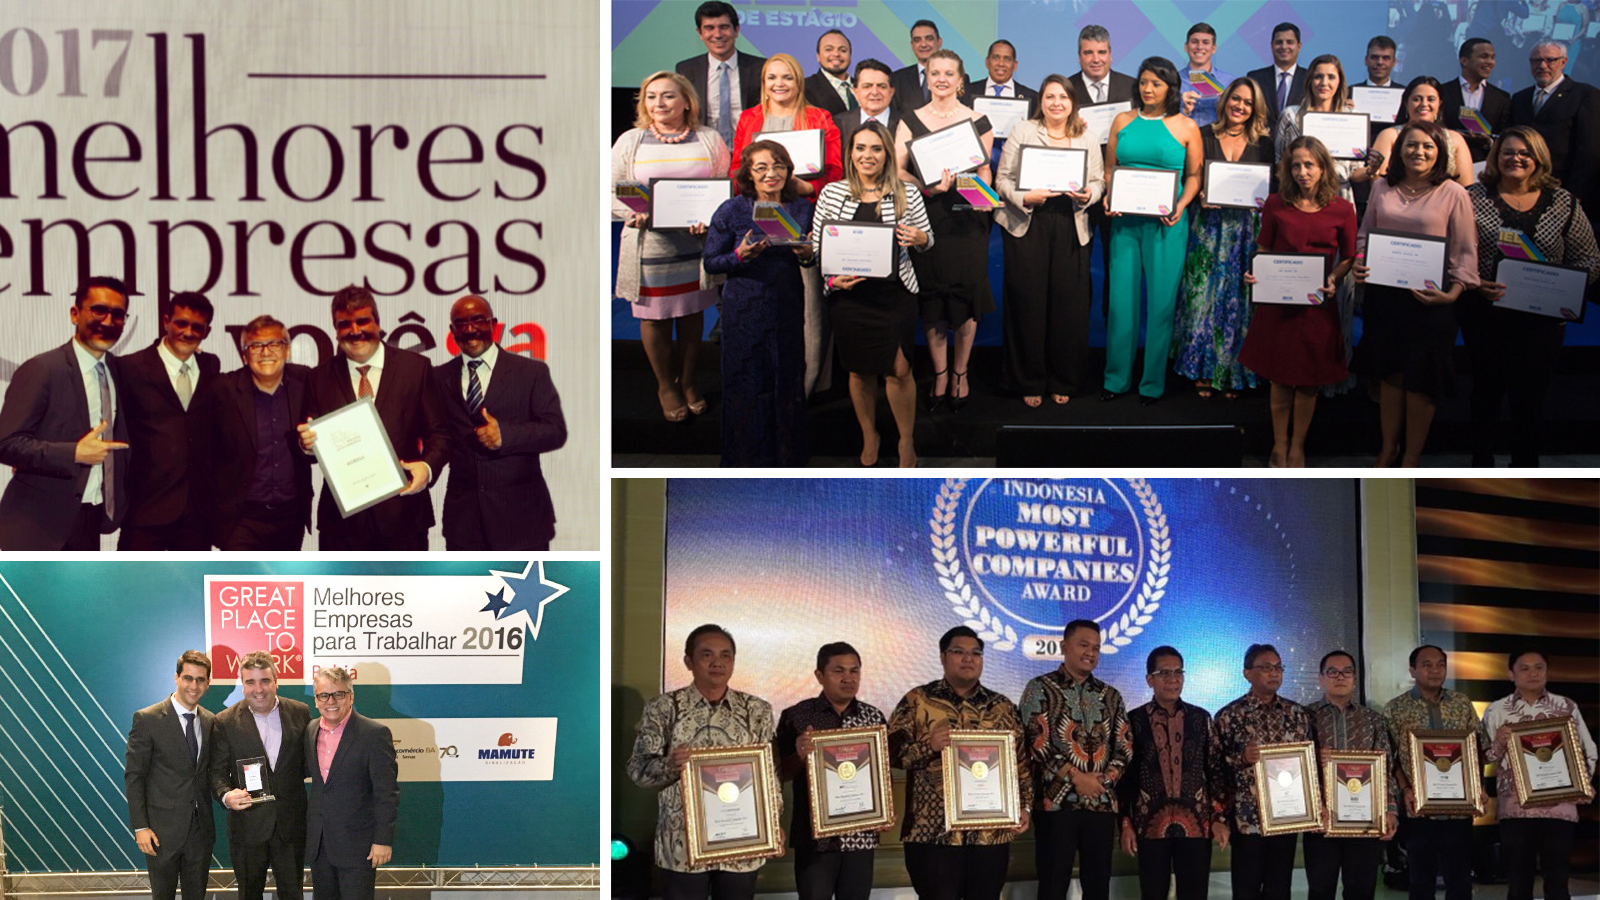 Kordsa continues to be granted awards globally